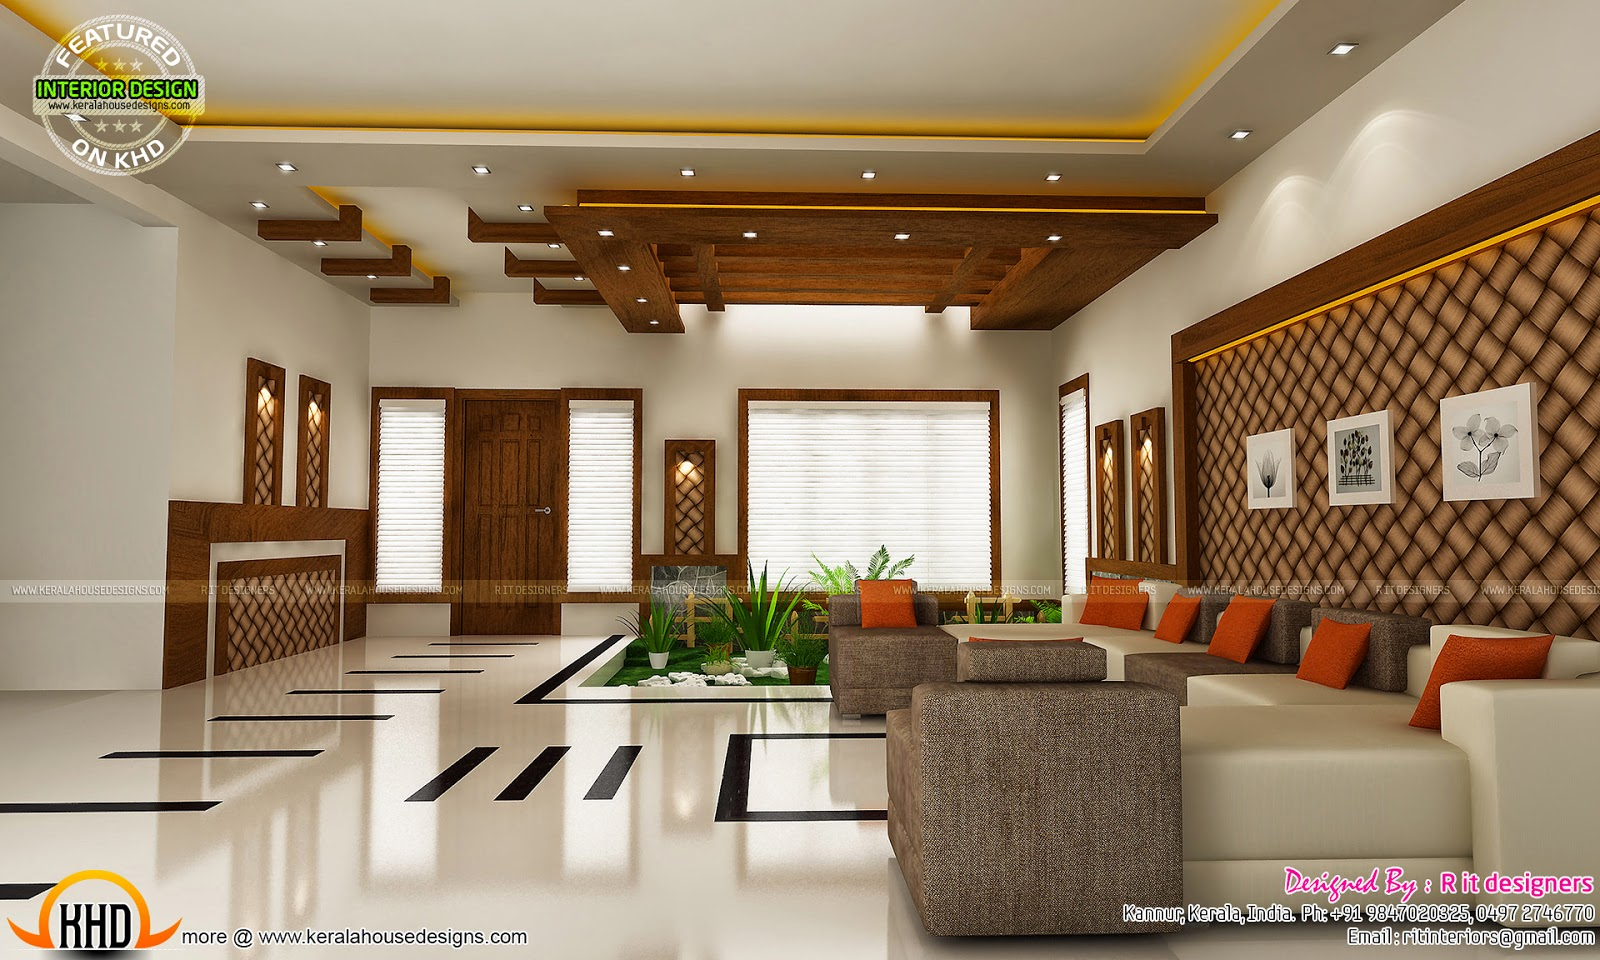 Modern and unique dining kitchen interior kerala home for Interior design for kitchen in kerala